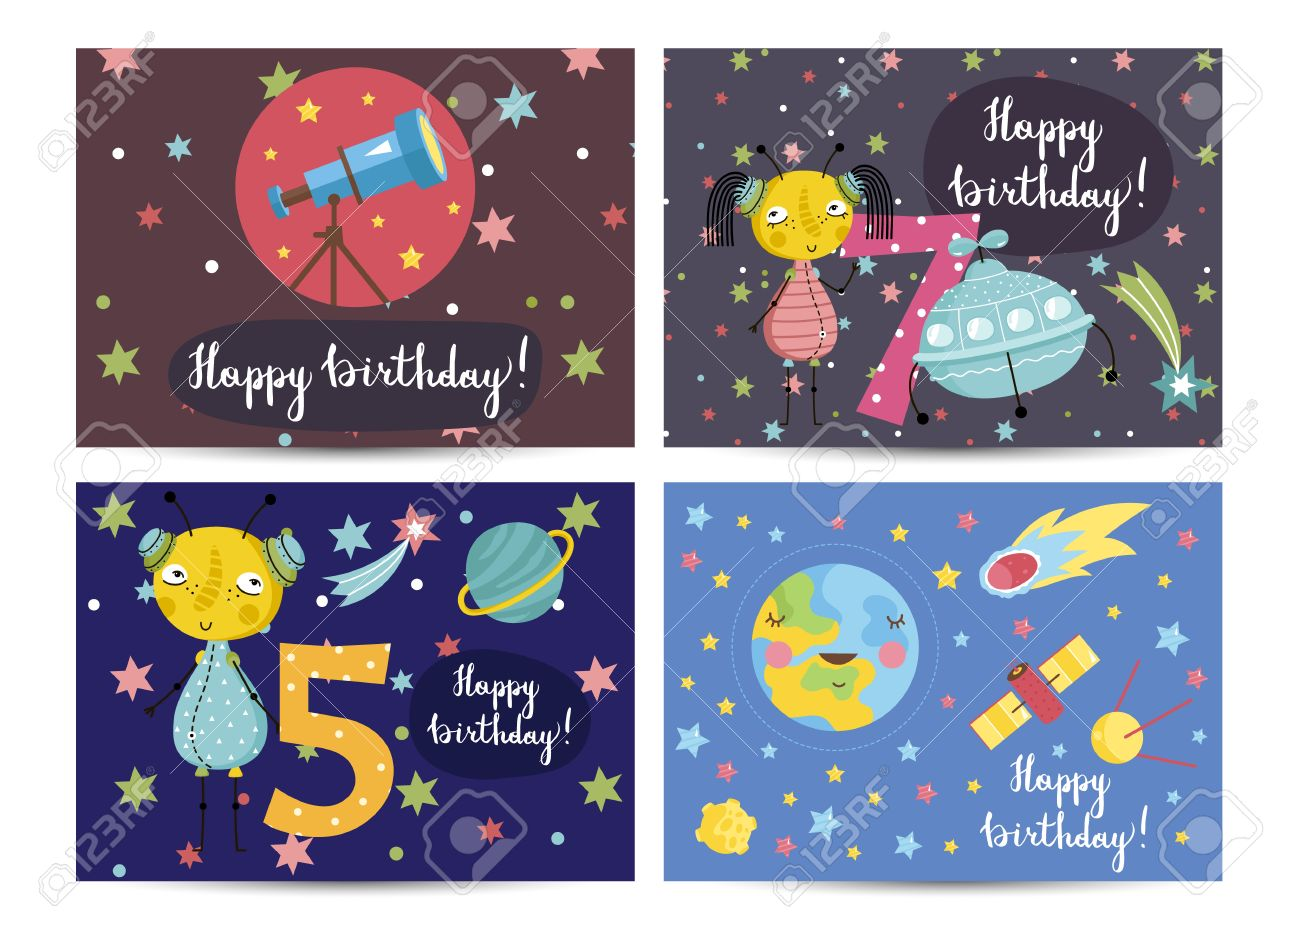 Happy Birthday Cartoon Greeting Cards On Space Theme Telescope Cute Aliens Flying Saucer